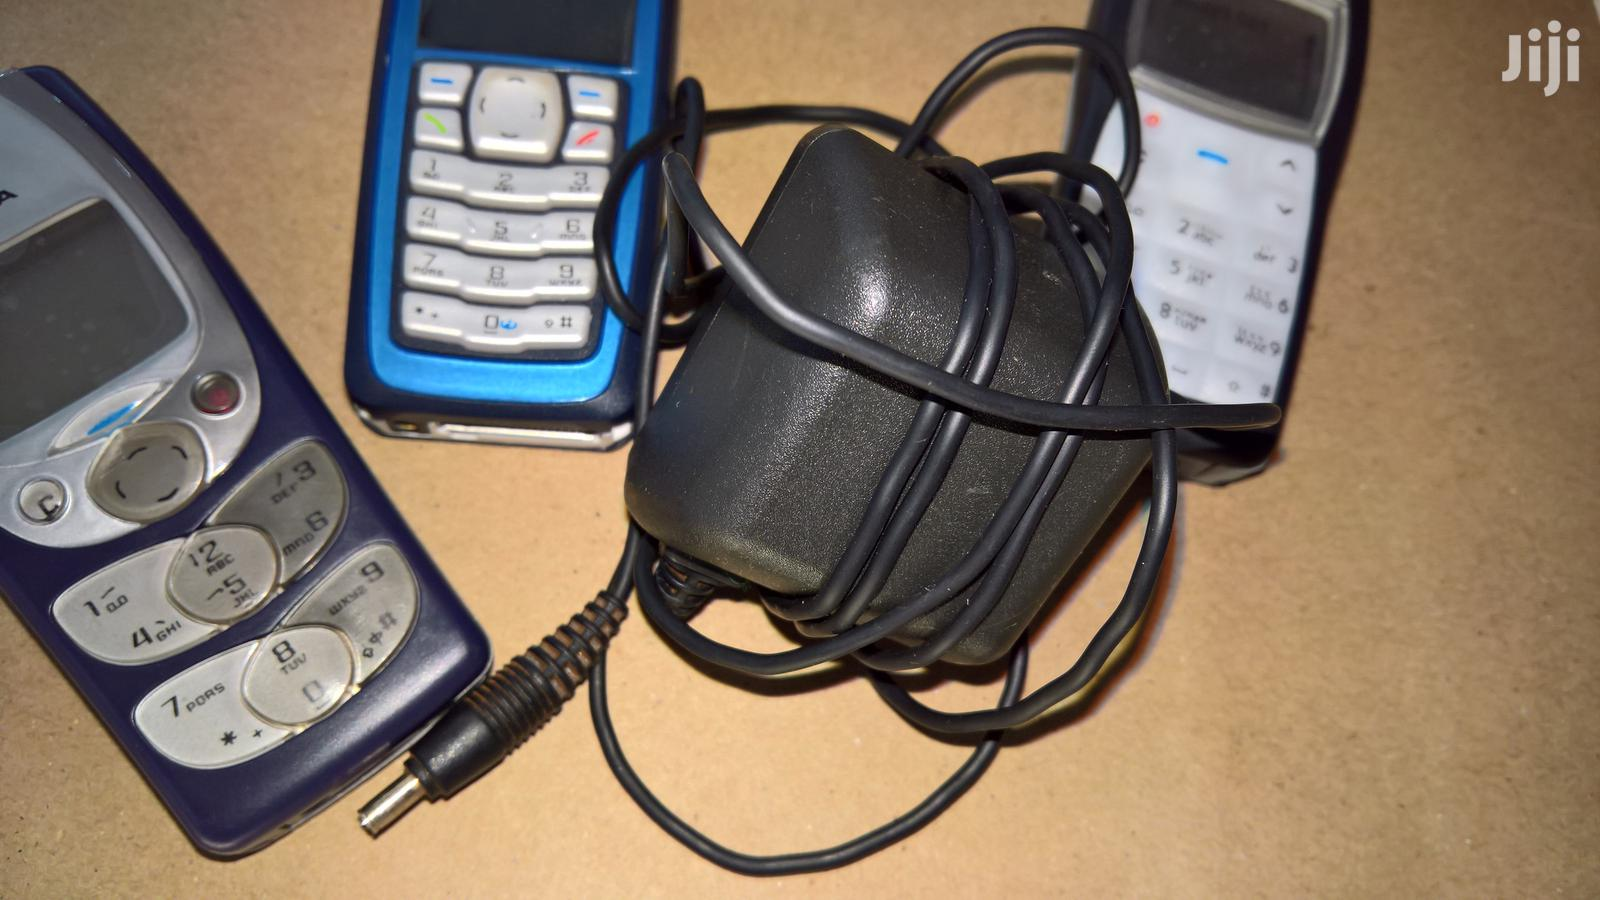 BIG PIN Charger for Vintage Nokia Phones | Accessories for Mobile Phones & Tablets for sale in Kampala, Central Region, Uganda